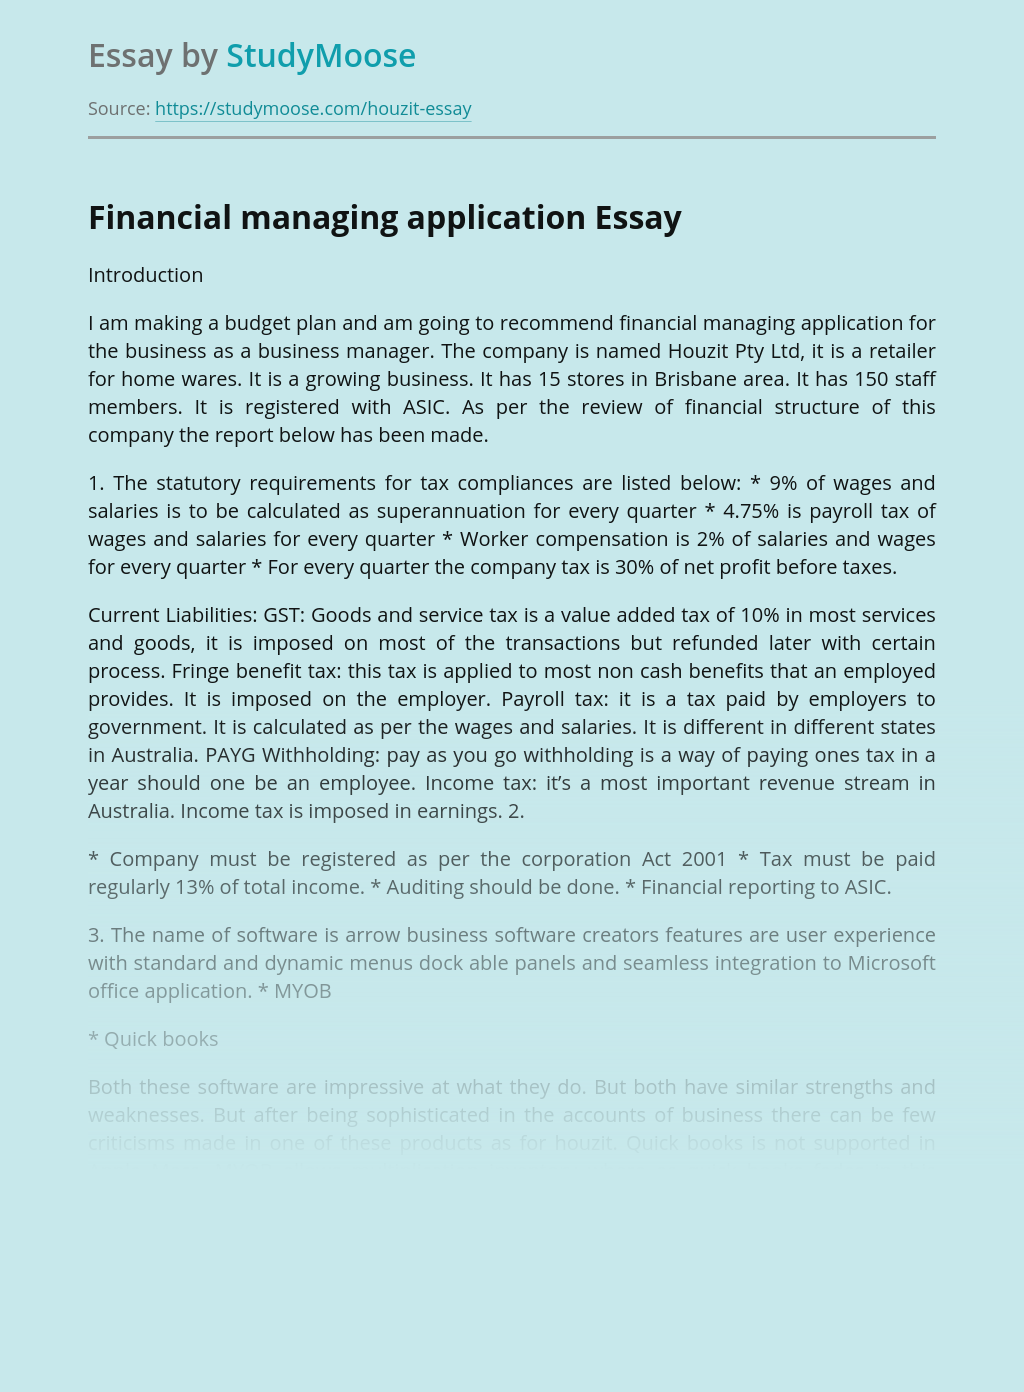 Financial Managing Application for the Business